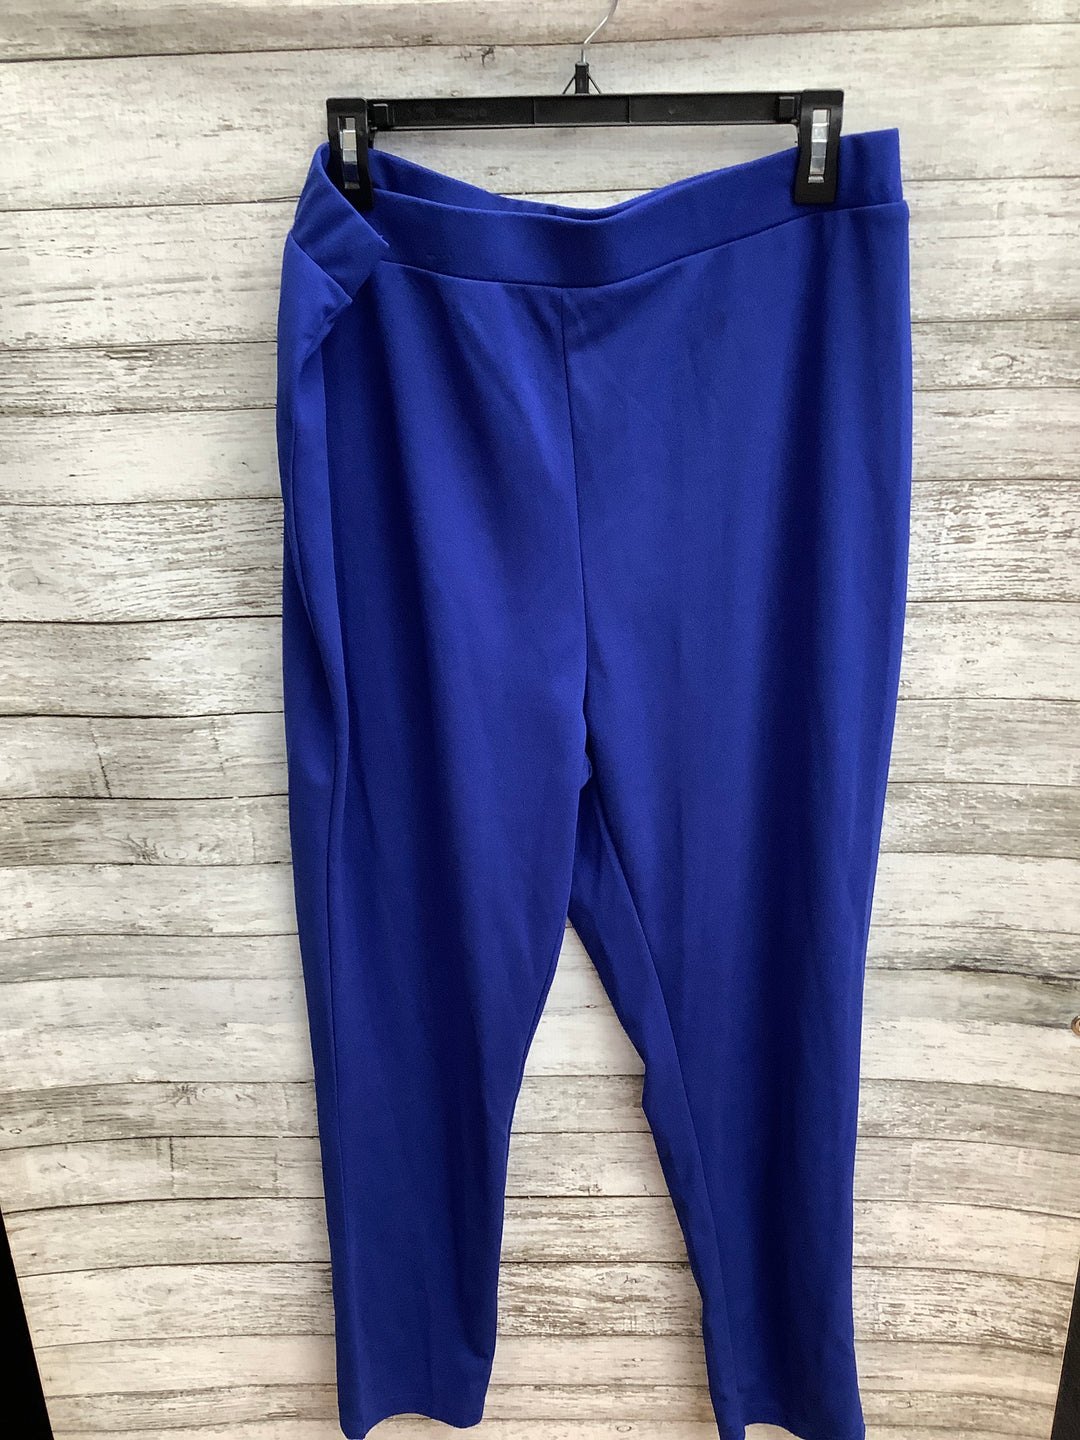 Primary Photo - brand: shein , style: pants , color: royal blue , size: 2x , sku: 105-3221-18013